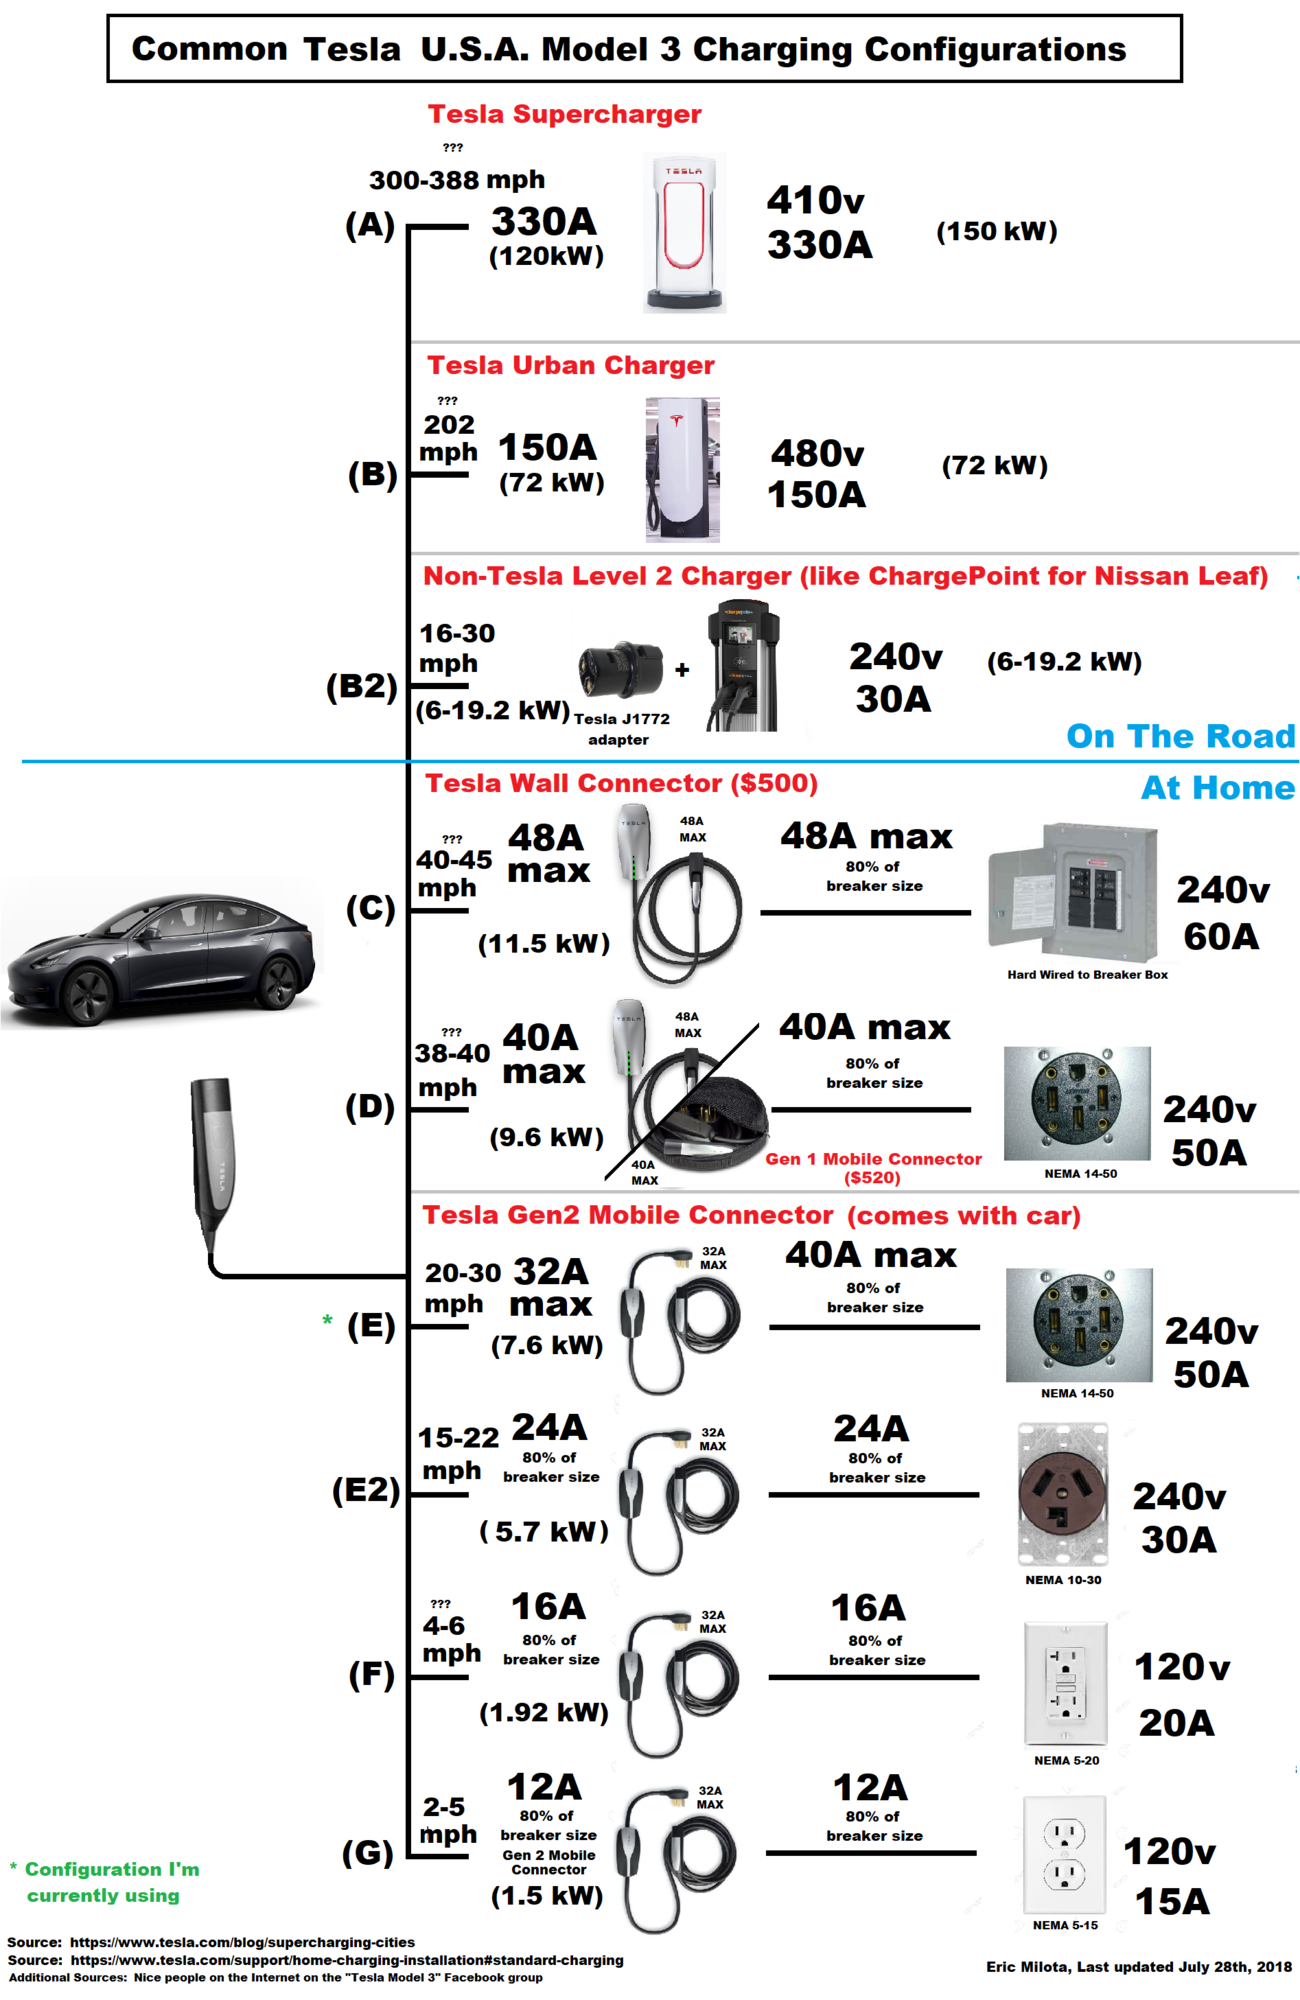 Tesla Model 3 Charging Configurations.png